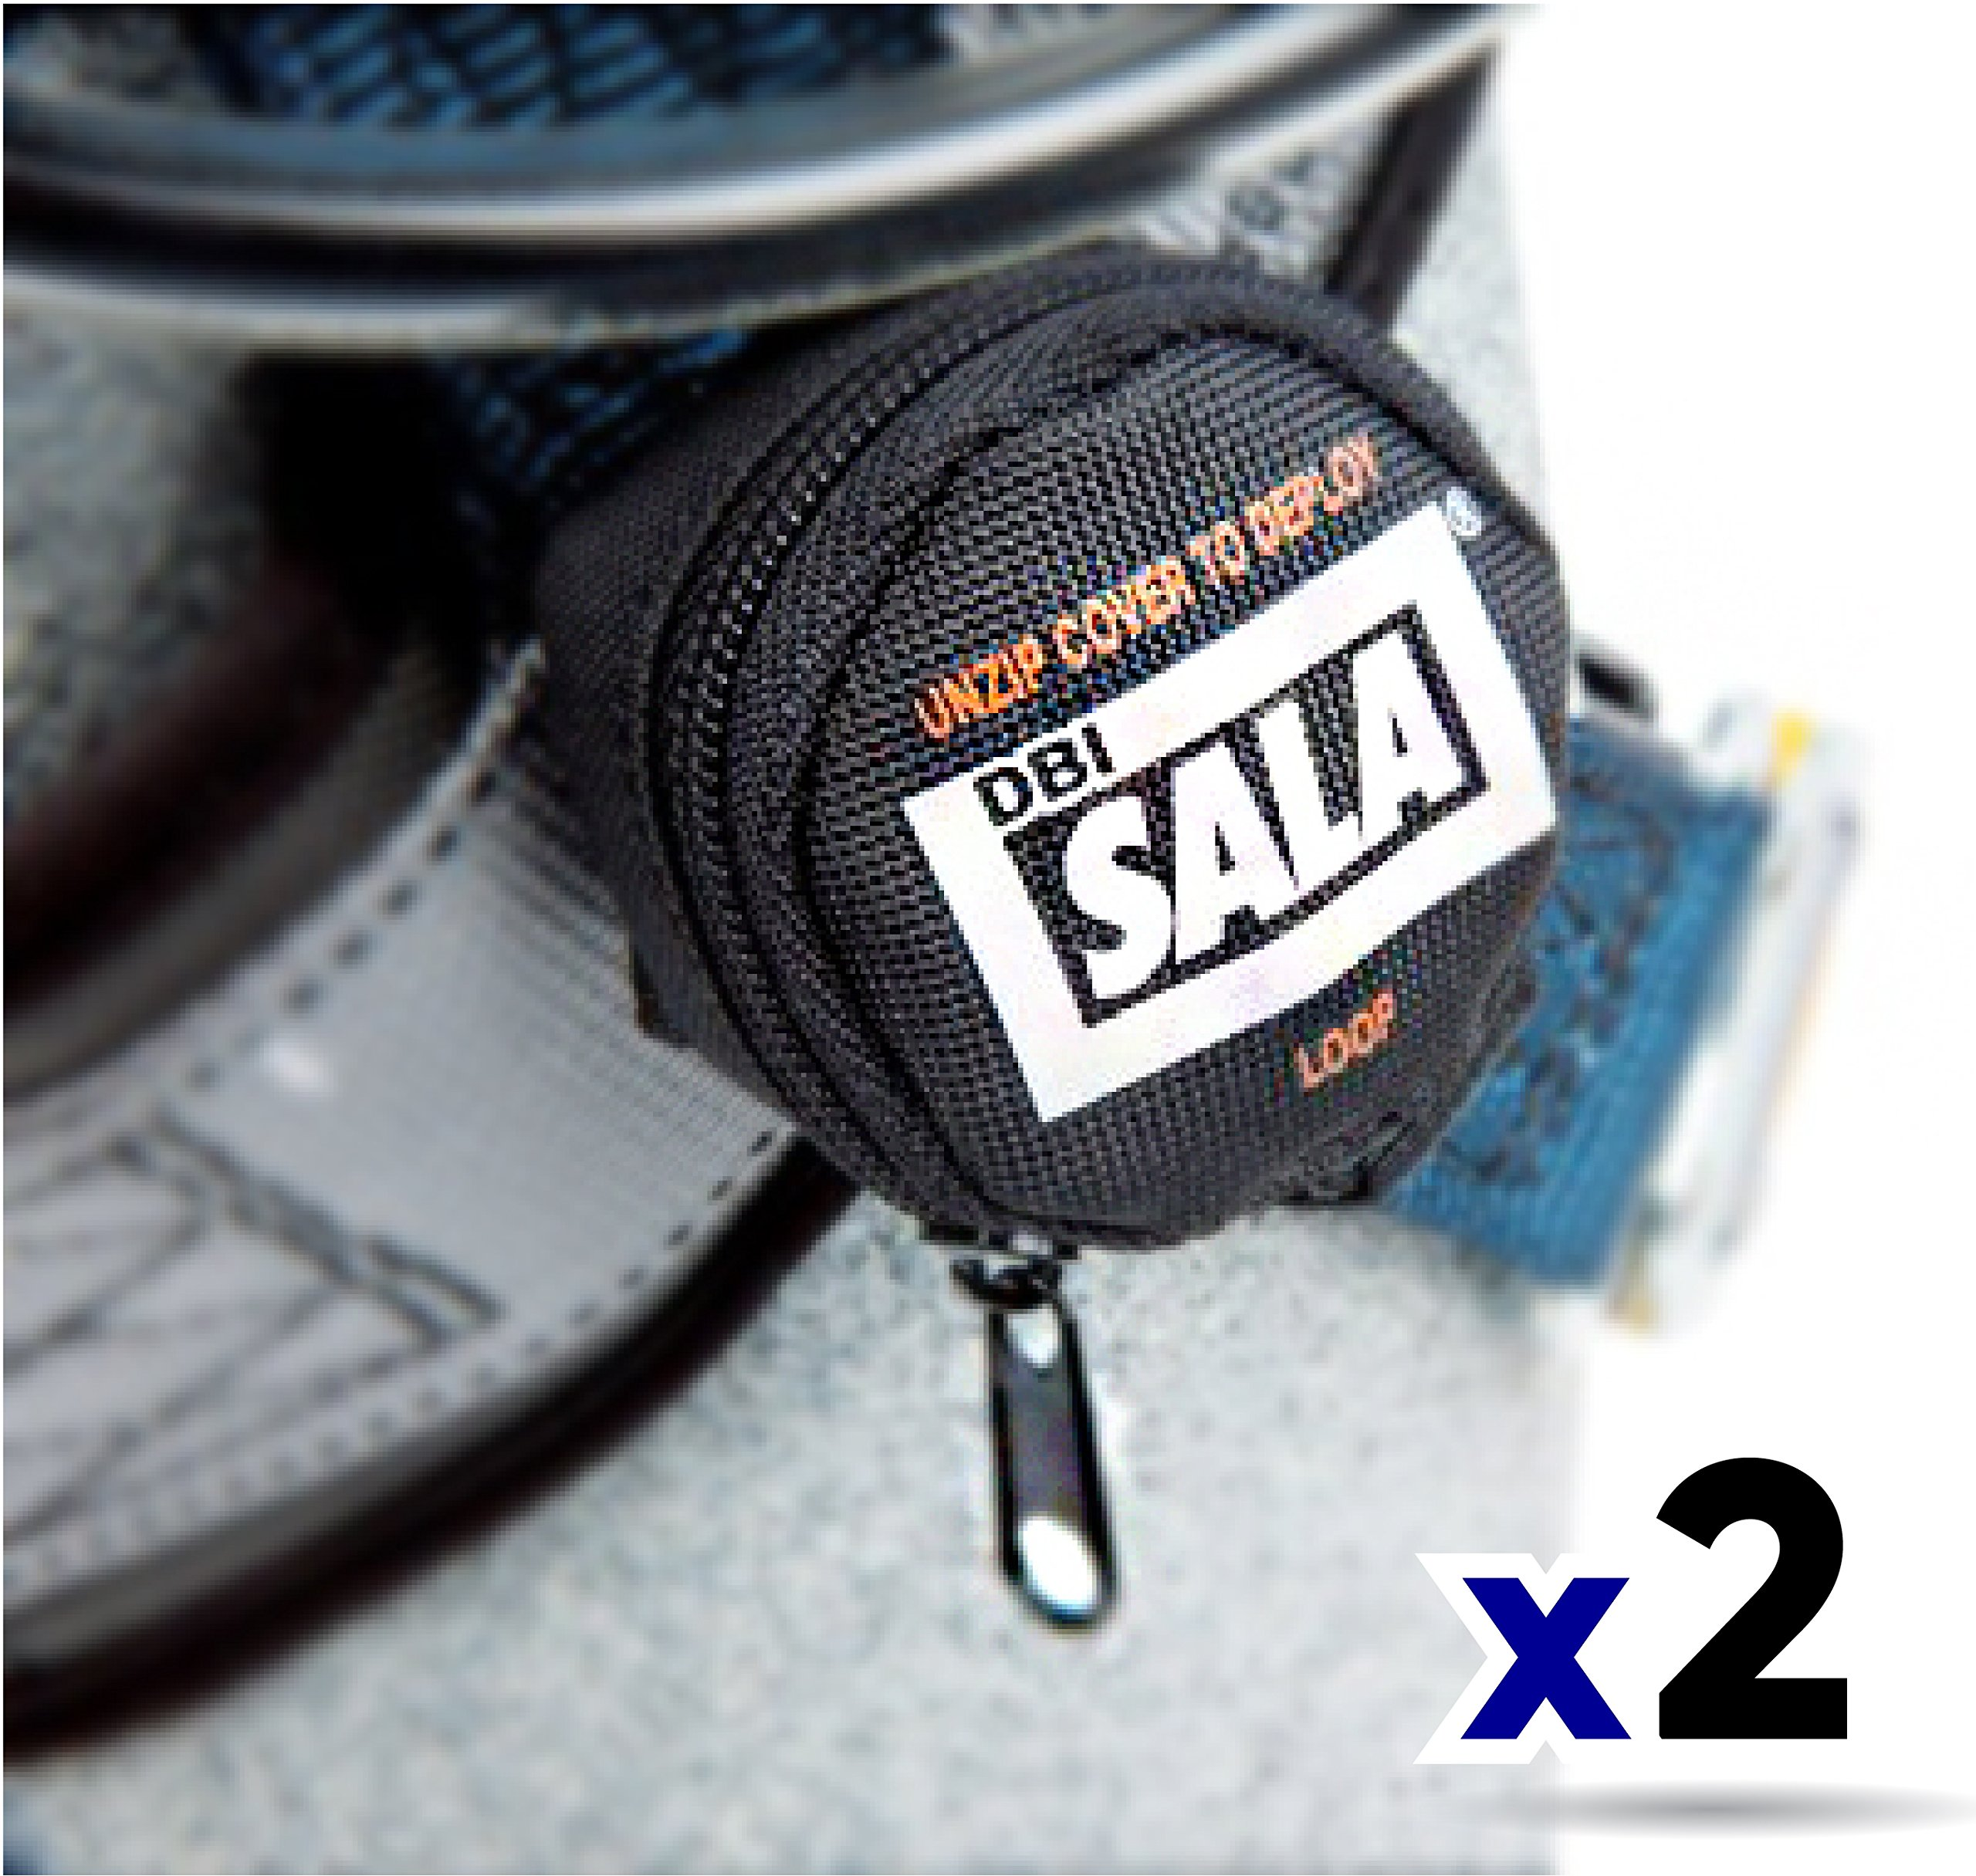 3M DBI-SALA 9501403 Fall Protection Full Body Harness Accessory, Suspension Trauma Safety Straps, Black (2 Pack)